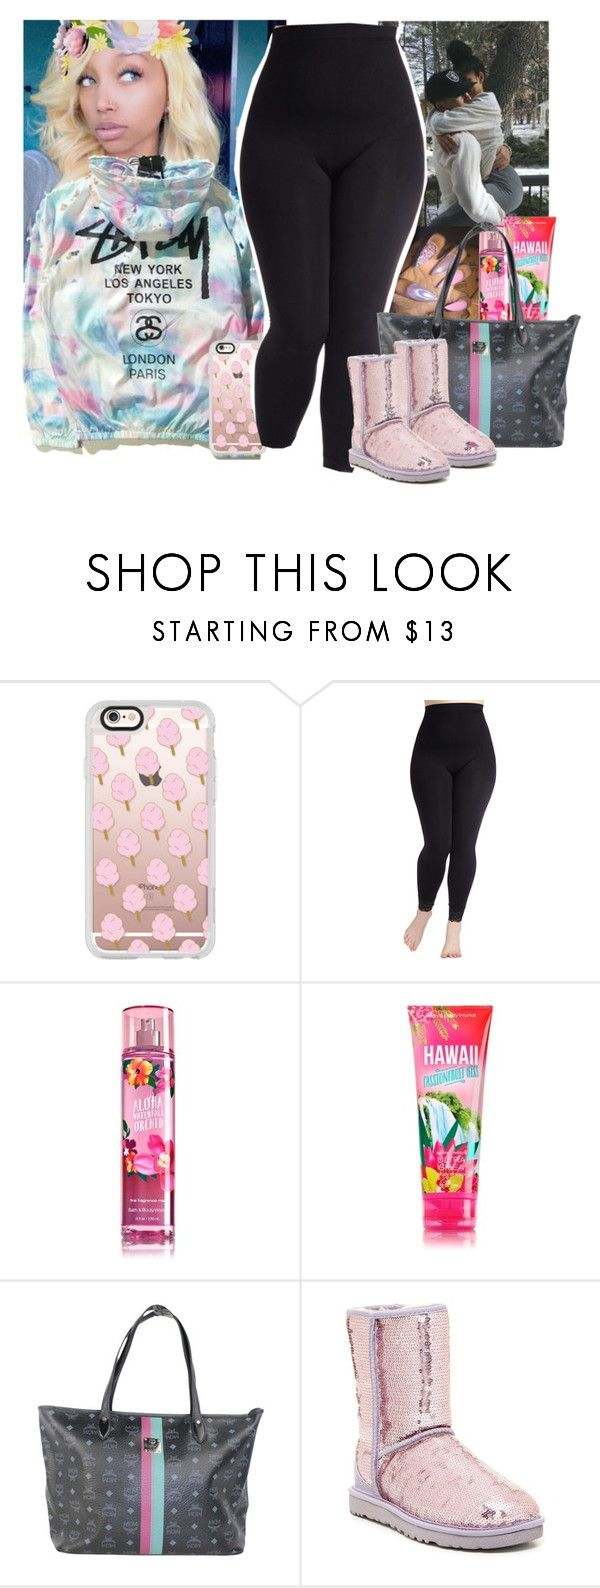 """Remember me💟💟"" by cravepinky ❤ liked on Polyvore featuring Casetify, MCM, UGG Australia and plus size clothing"